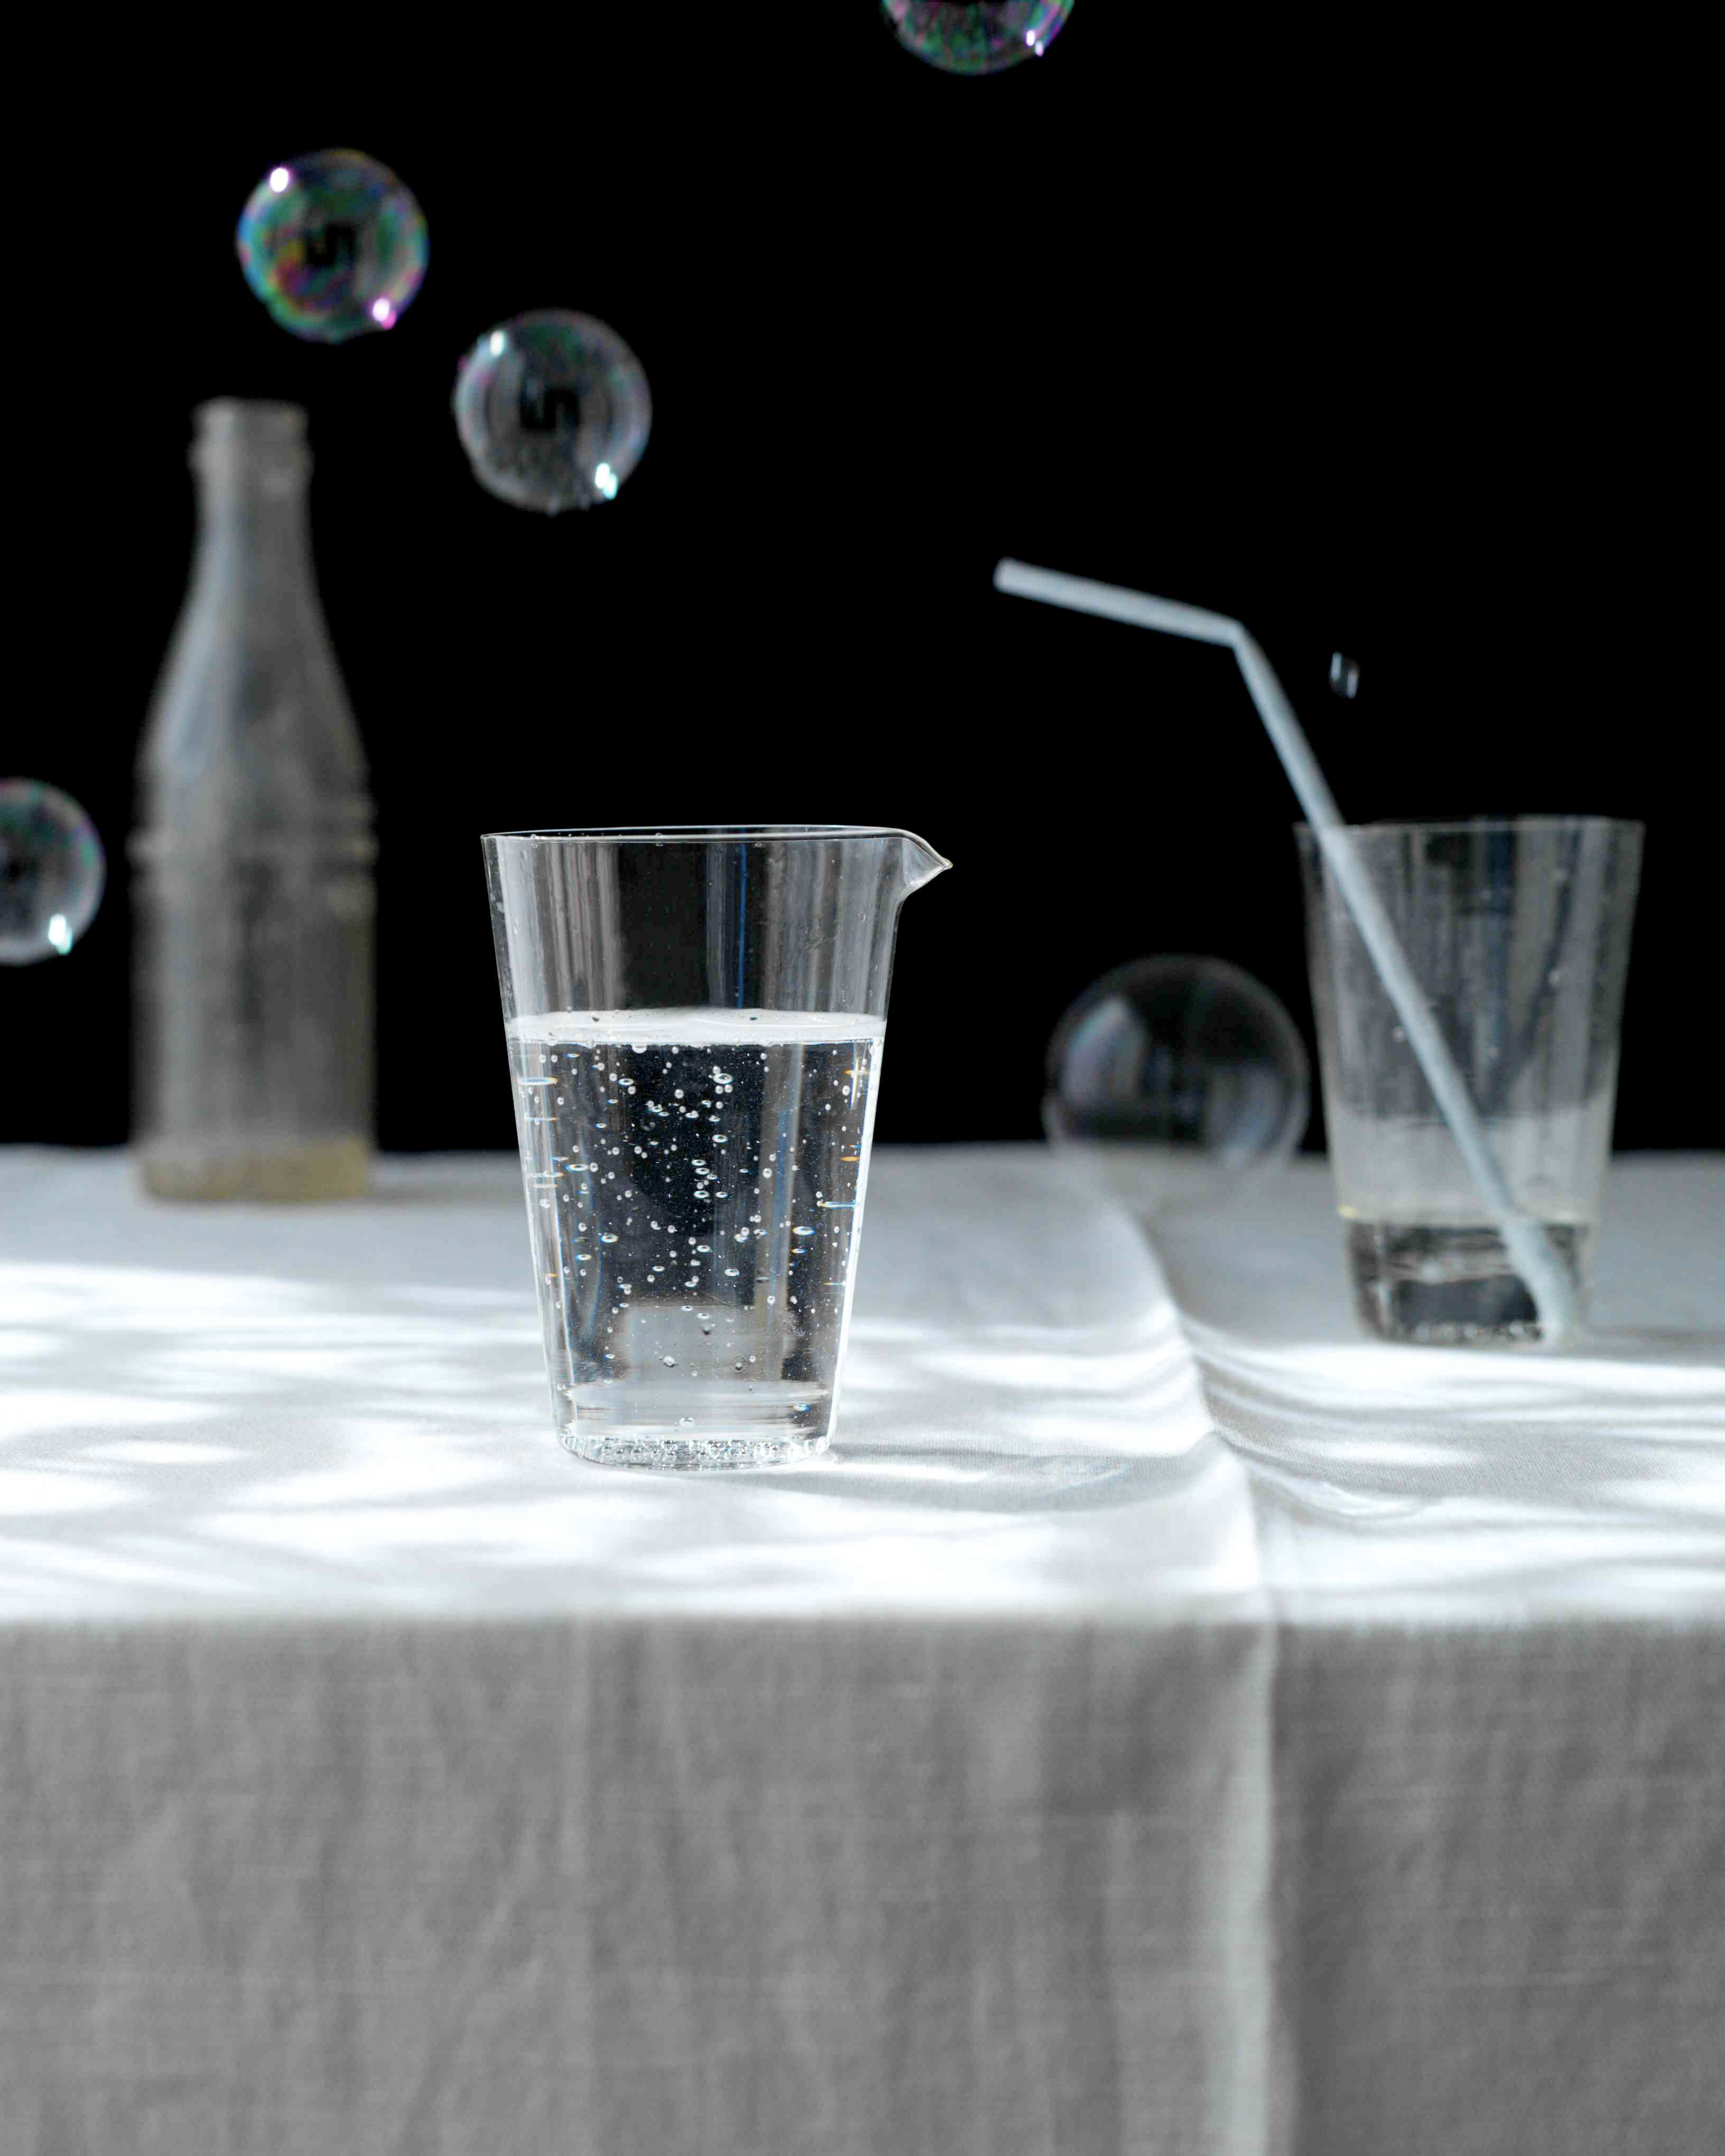 food stylist in San Francisco - water glasses with bubbles: photographed by Laurie Frankel photographer